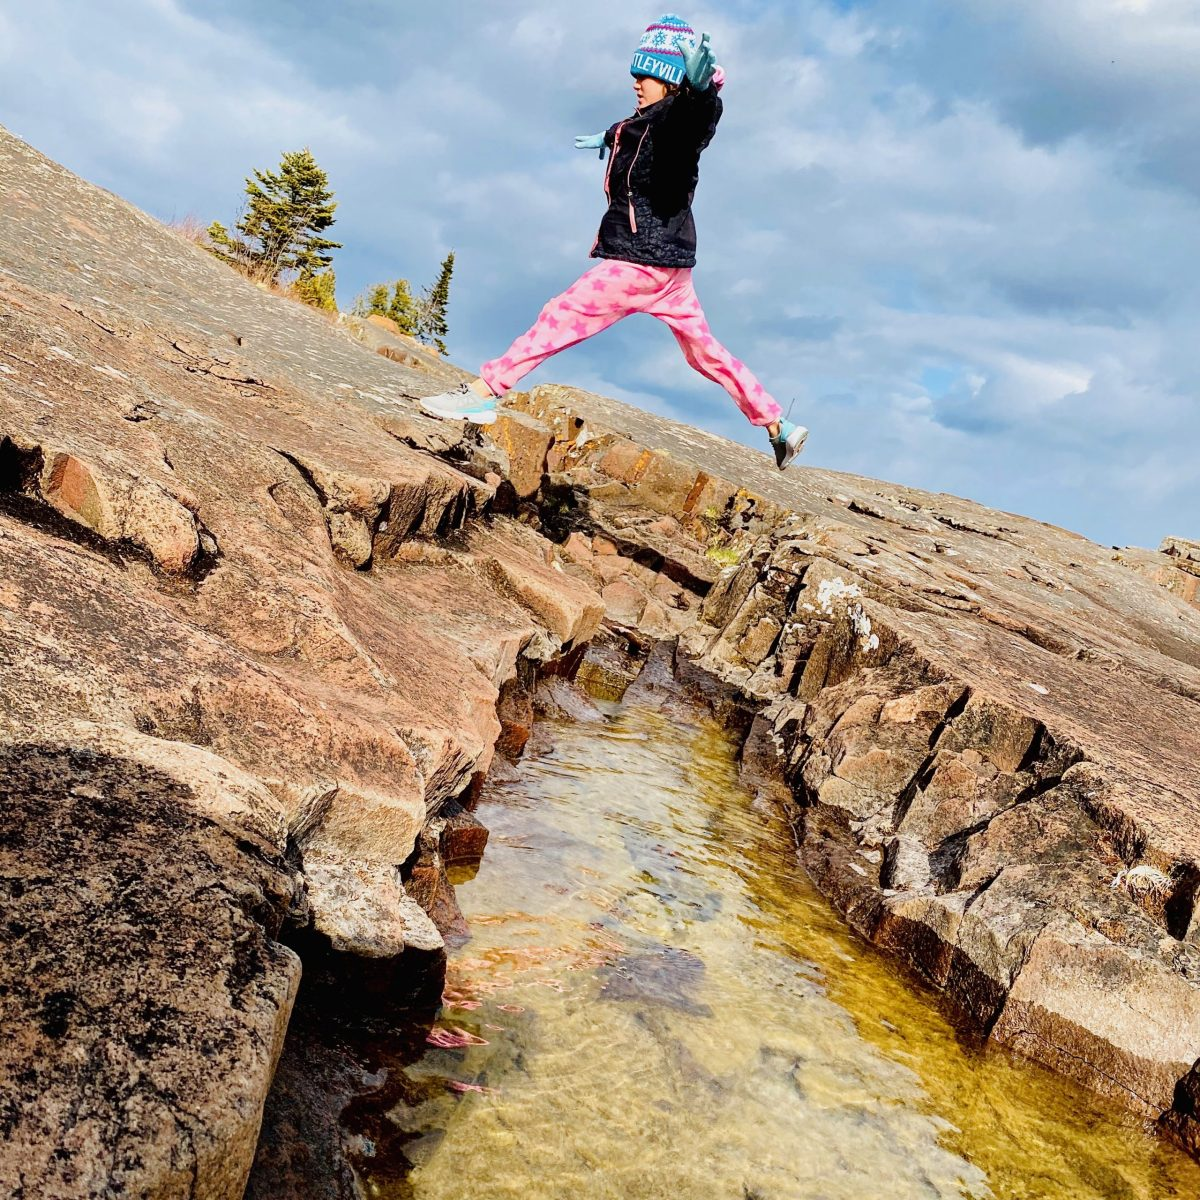 Hiking and Sight-seeing with Kids Along Minnesota's North Shore